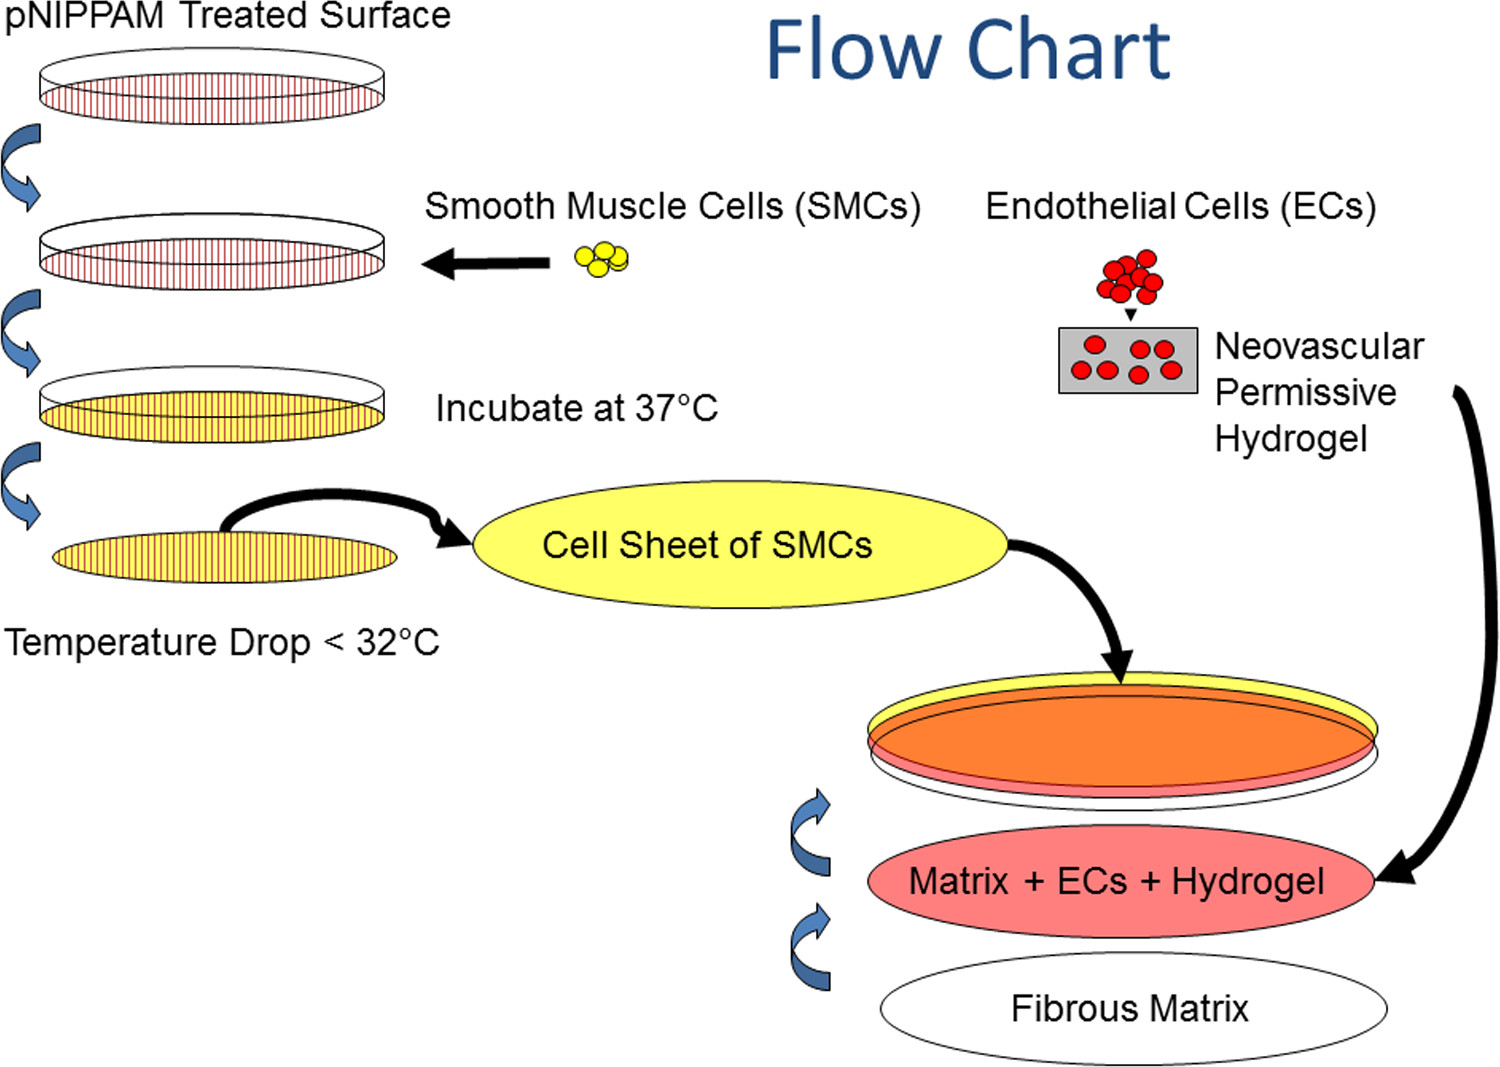 hight resolution of flow chart of tissue assembly cell sheets are created by seeding cells onto the thermoresponsive pnipaam coated plates and allowing enough time for cells